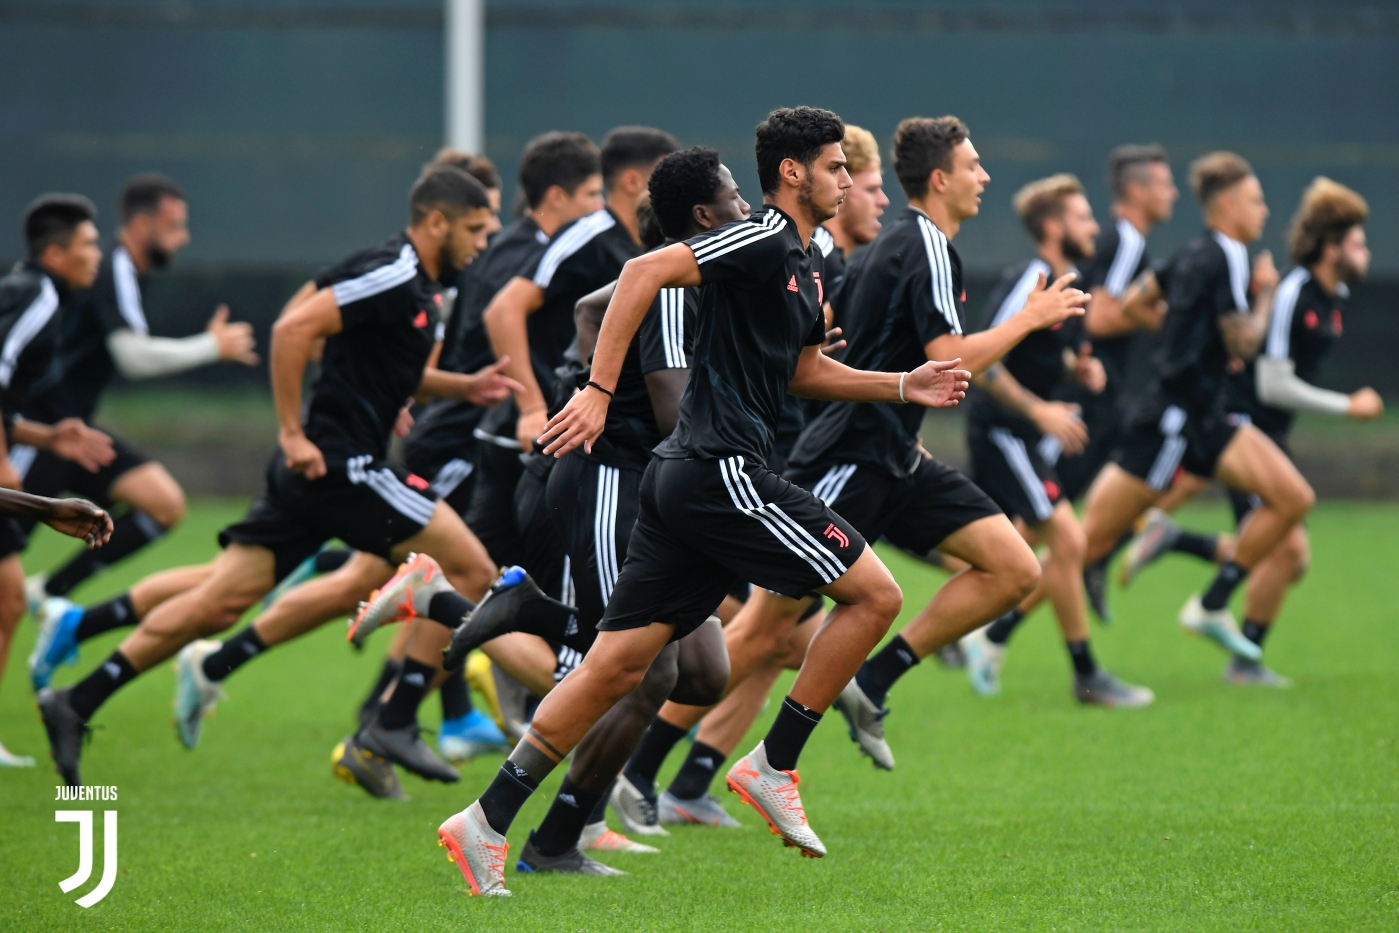 juventus fc players in quarantine for suspected coronavirus case juventus fc players in quarantine for